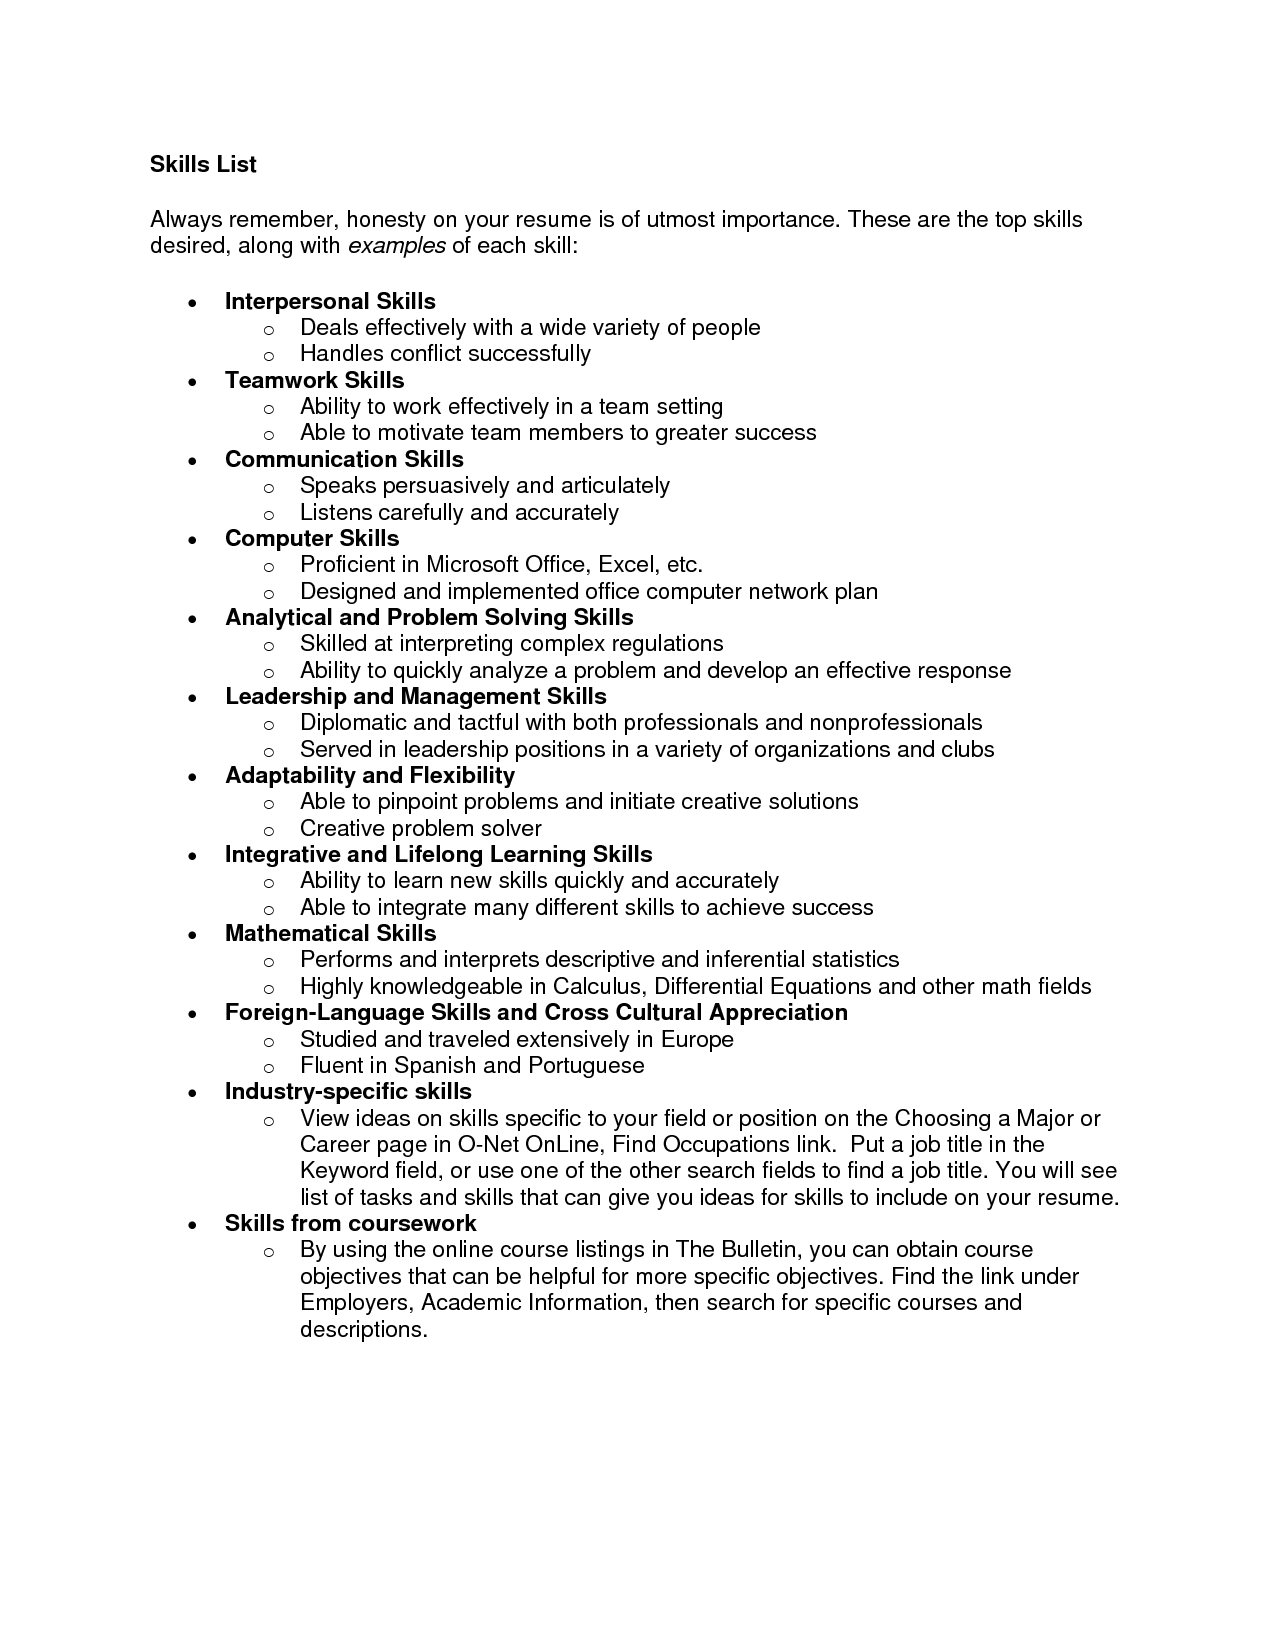 Wonderful List Of Skills And Experience Examples Of Resume Skills List Resume On List Of Resume Skills